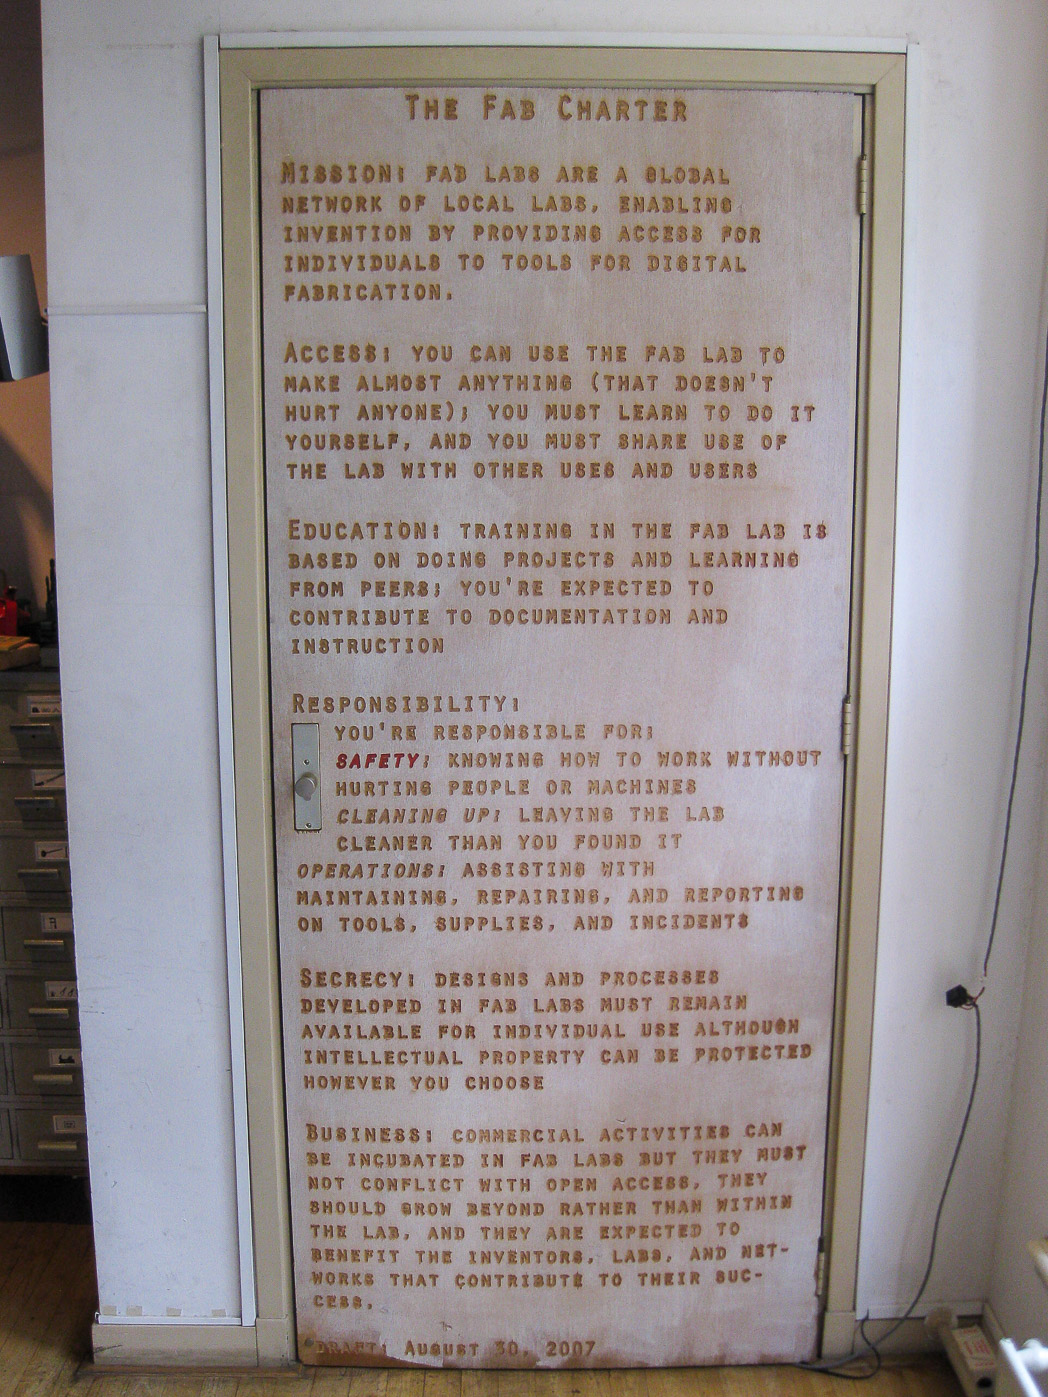 photograph of the Fab Charter laser etched on a wooden door in FabLab Amsterdam